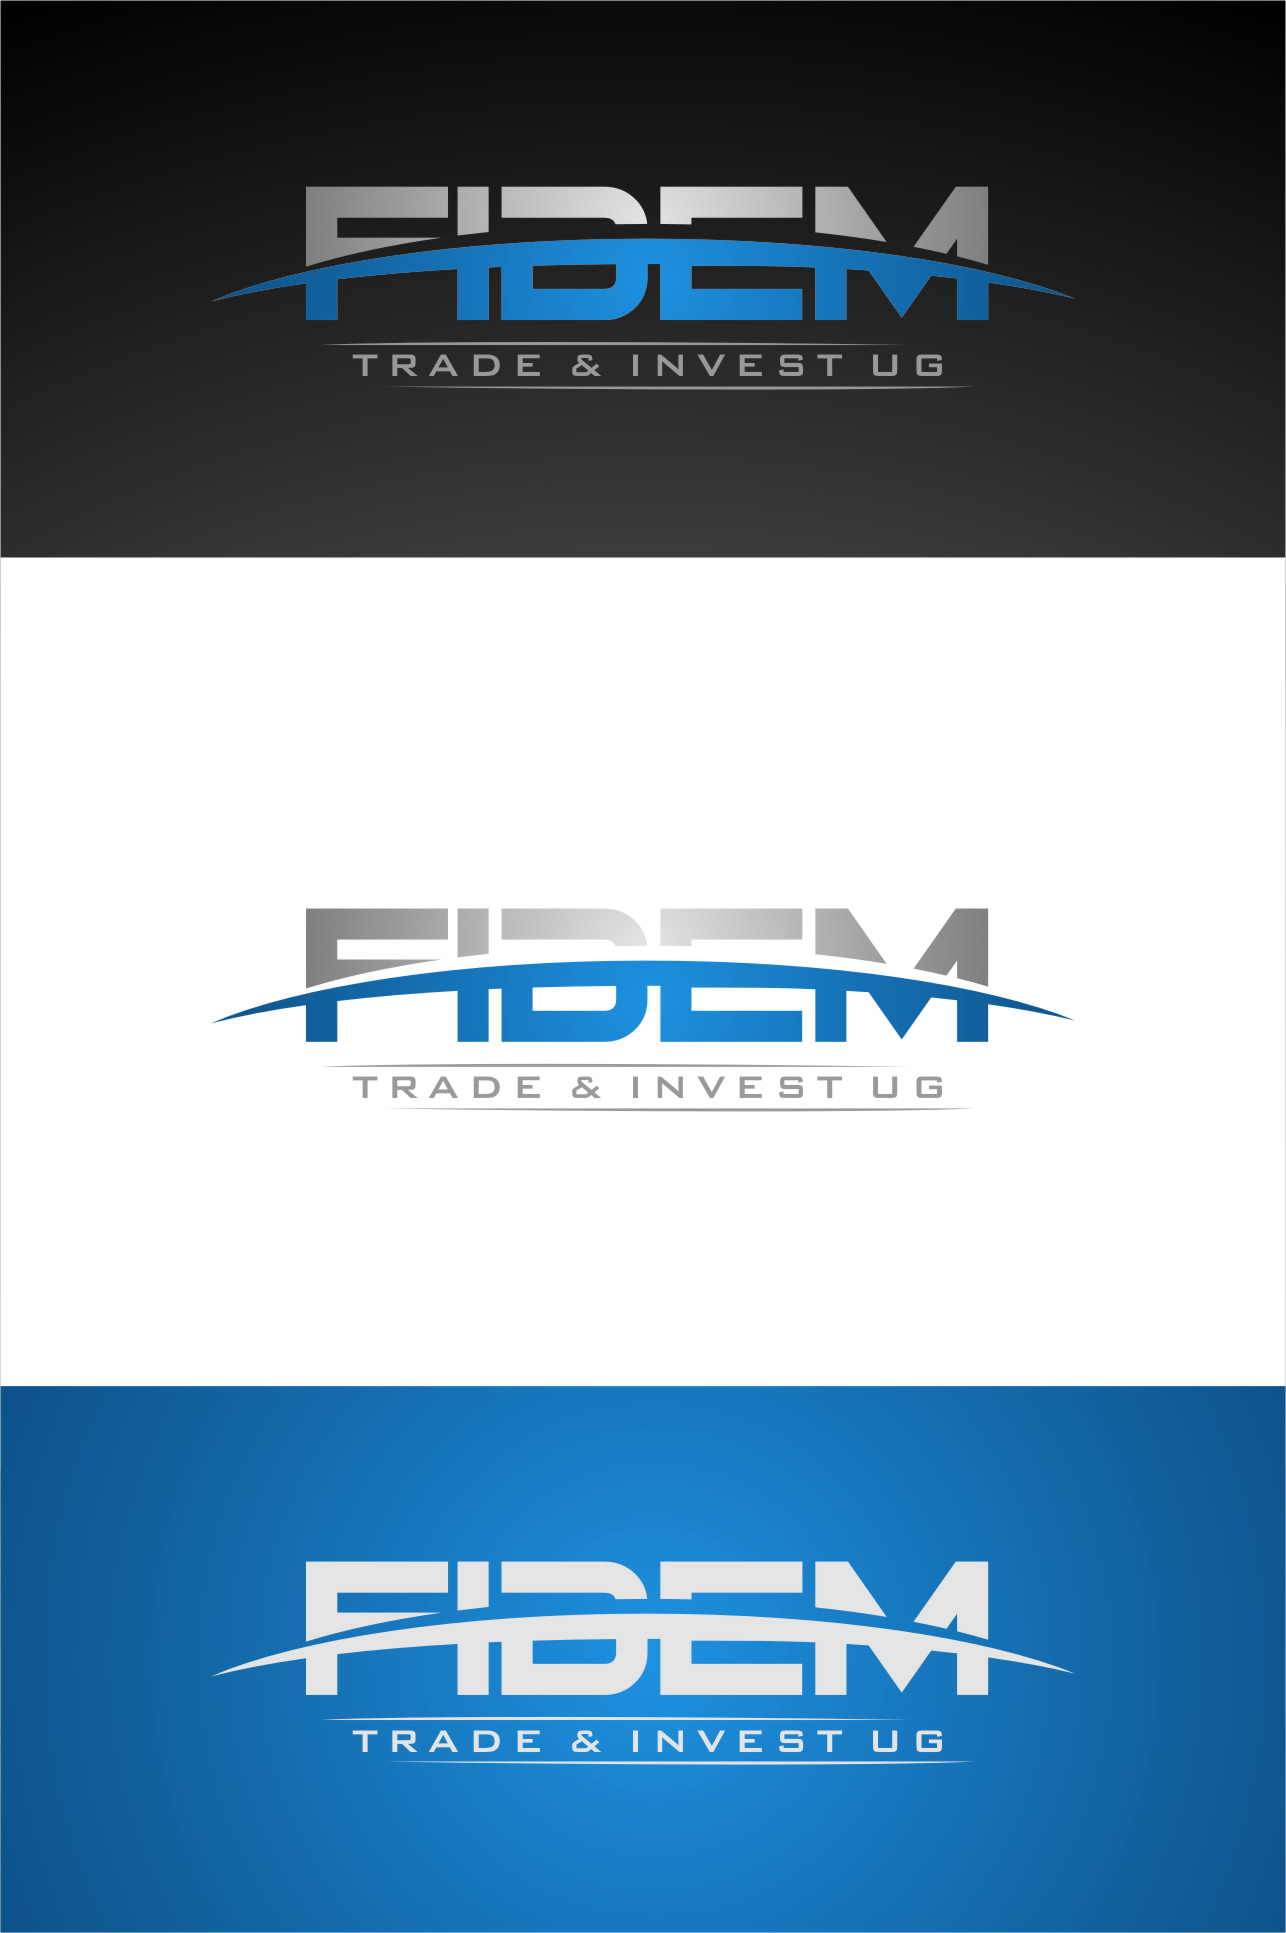 Logo Design by RasYa Muhammad Athaya - Entry No. 360 in the Logo Design Contest Professional Logo Design for FIDEM Trade & Invest UG.